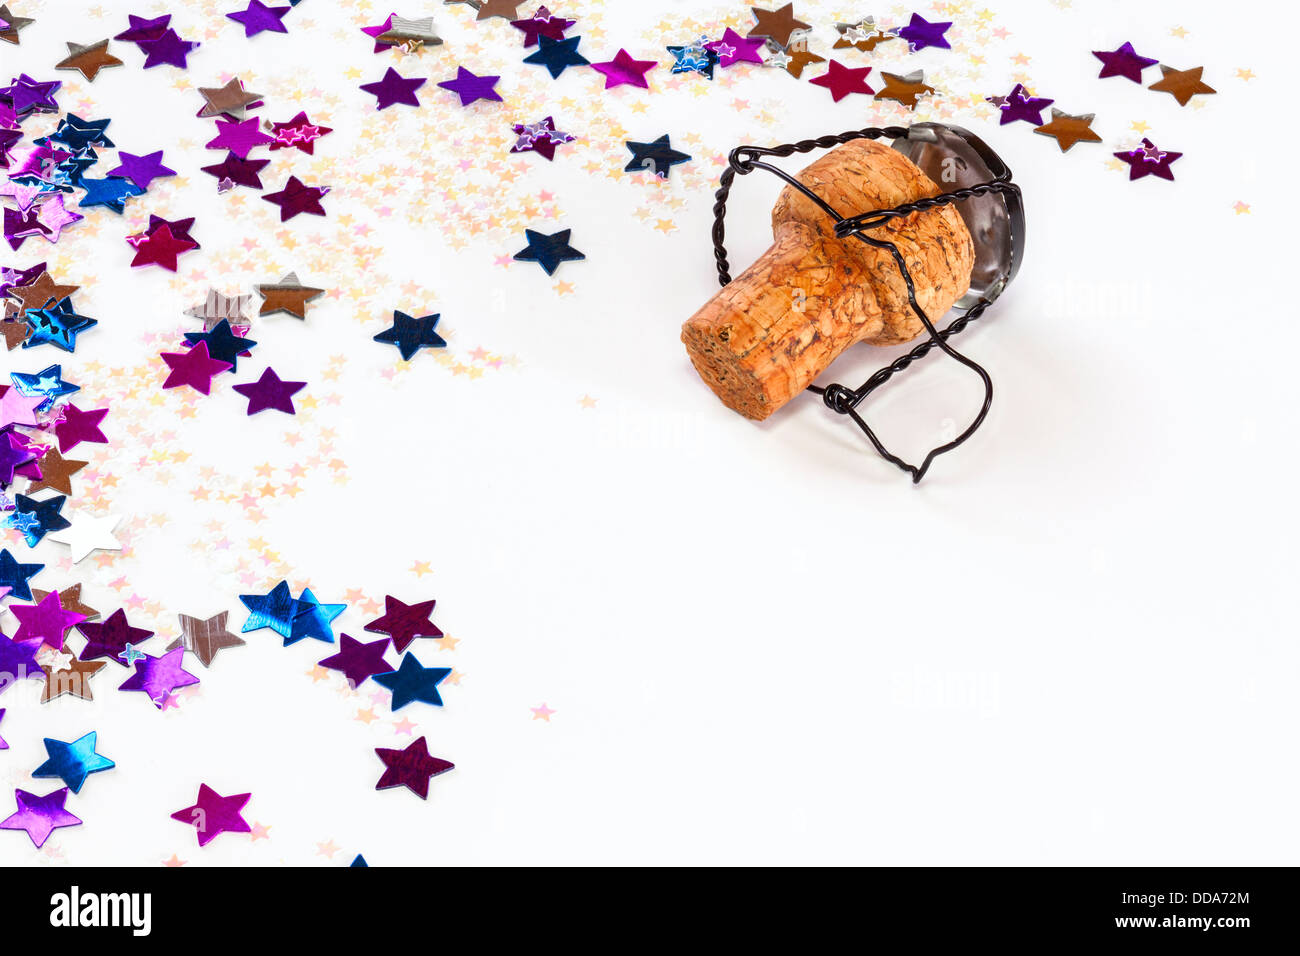 Champagne Cork and Confetti - champagne cork with confetti or glitter on white background with copy space. - Stock Image